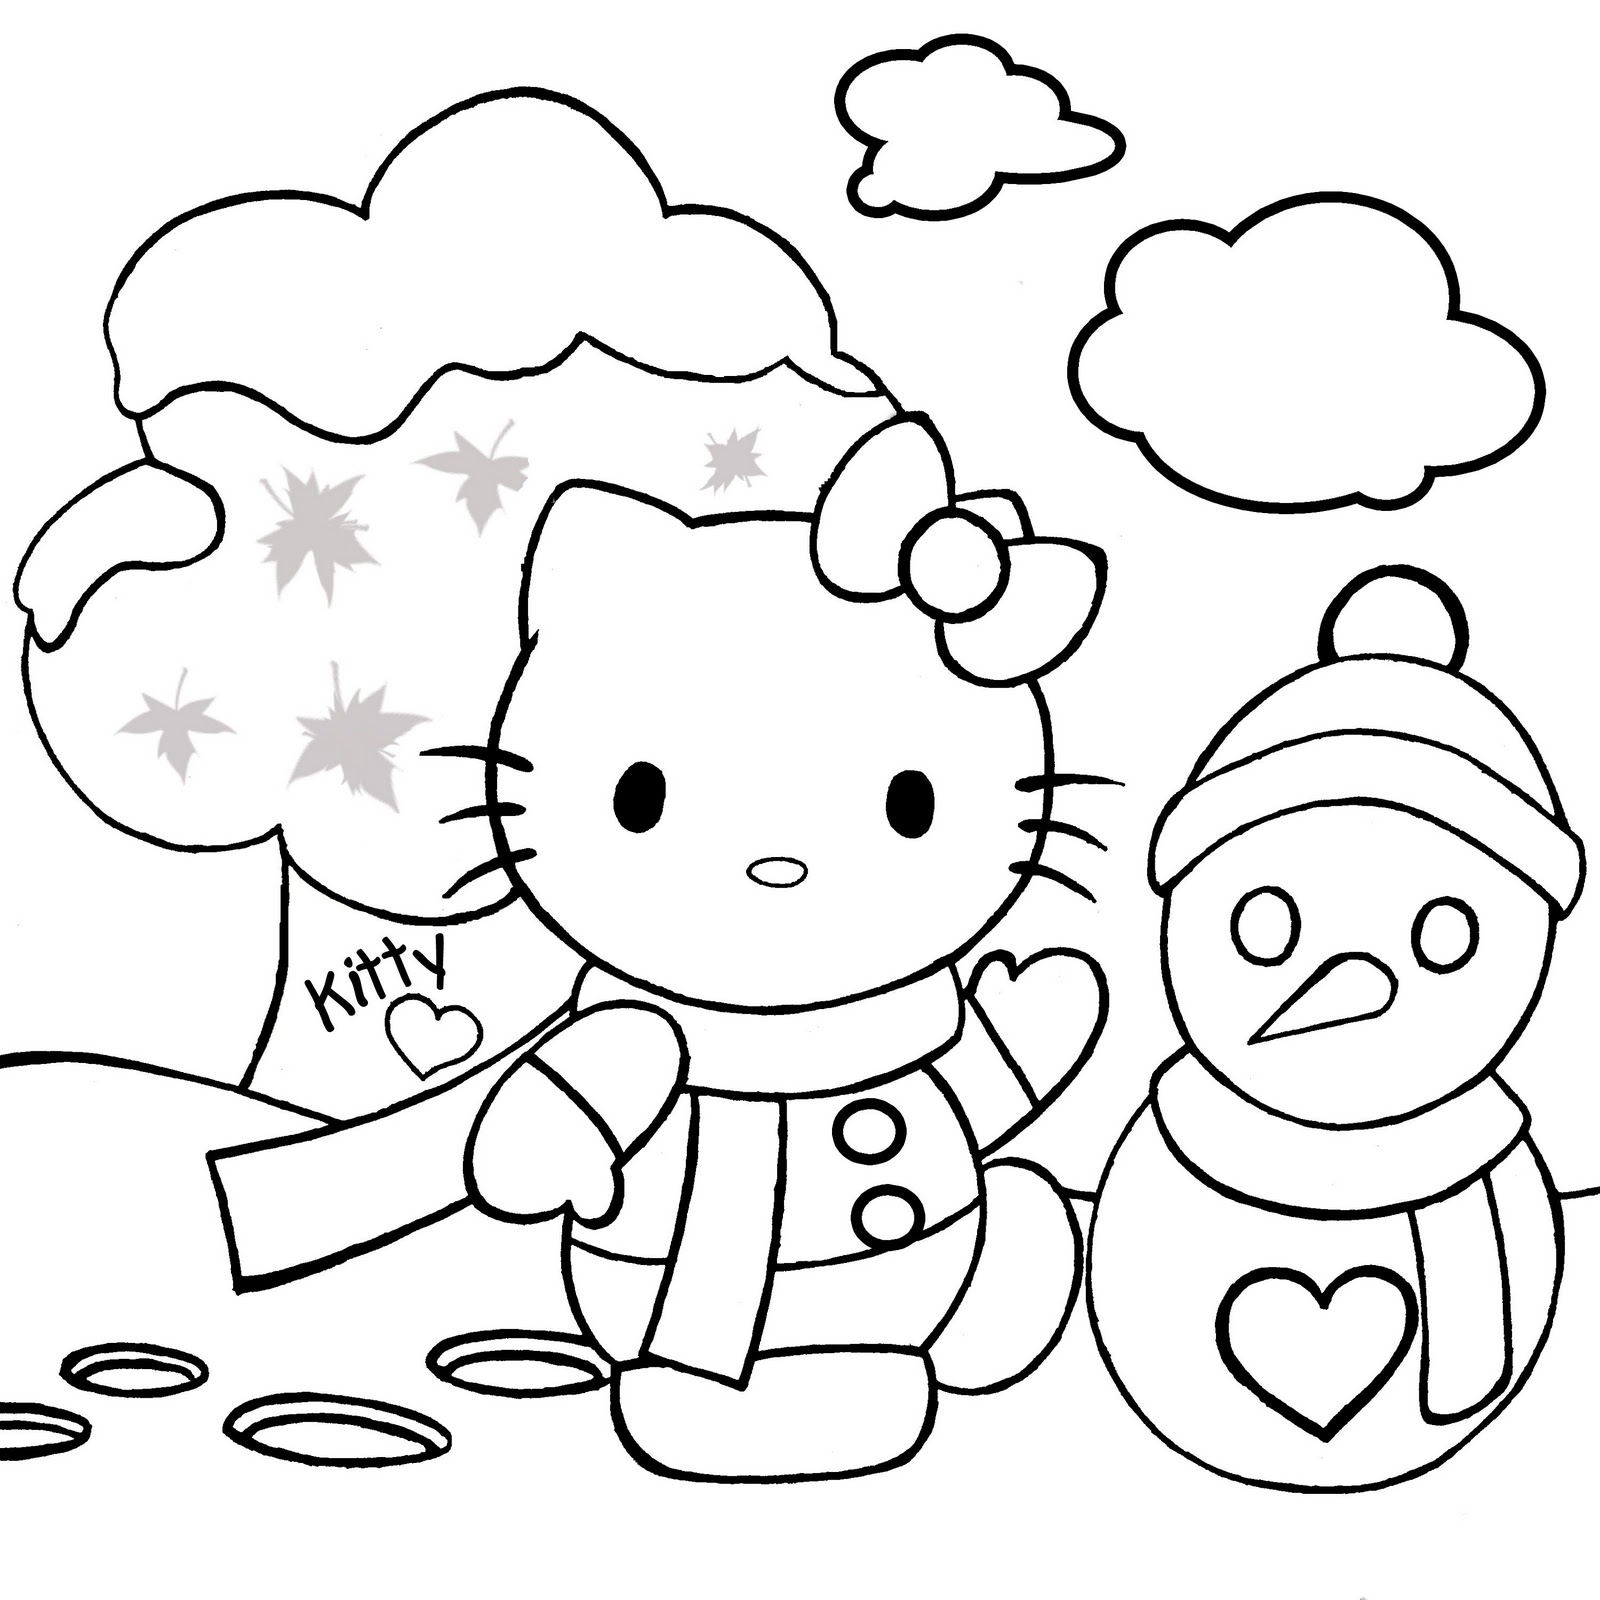 christmas coloring pages for kids coloring pages christmas snowman coloring pages free and for coloring pages kids christmas